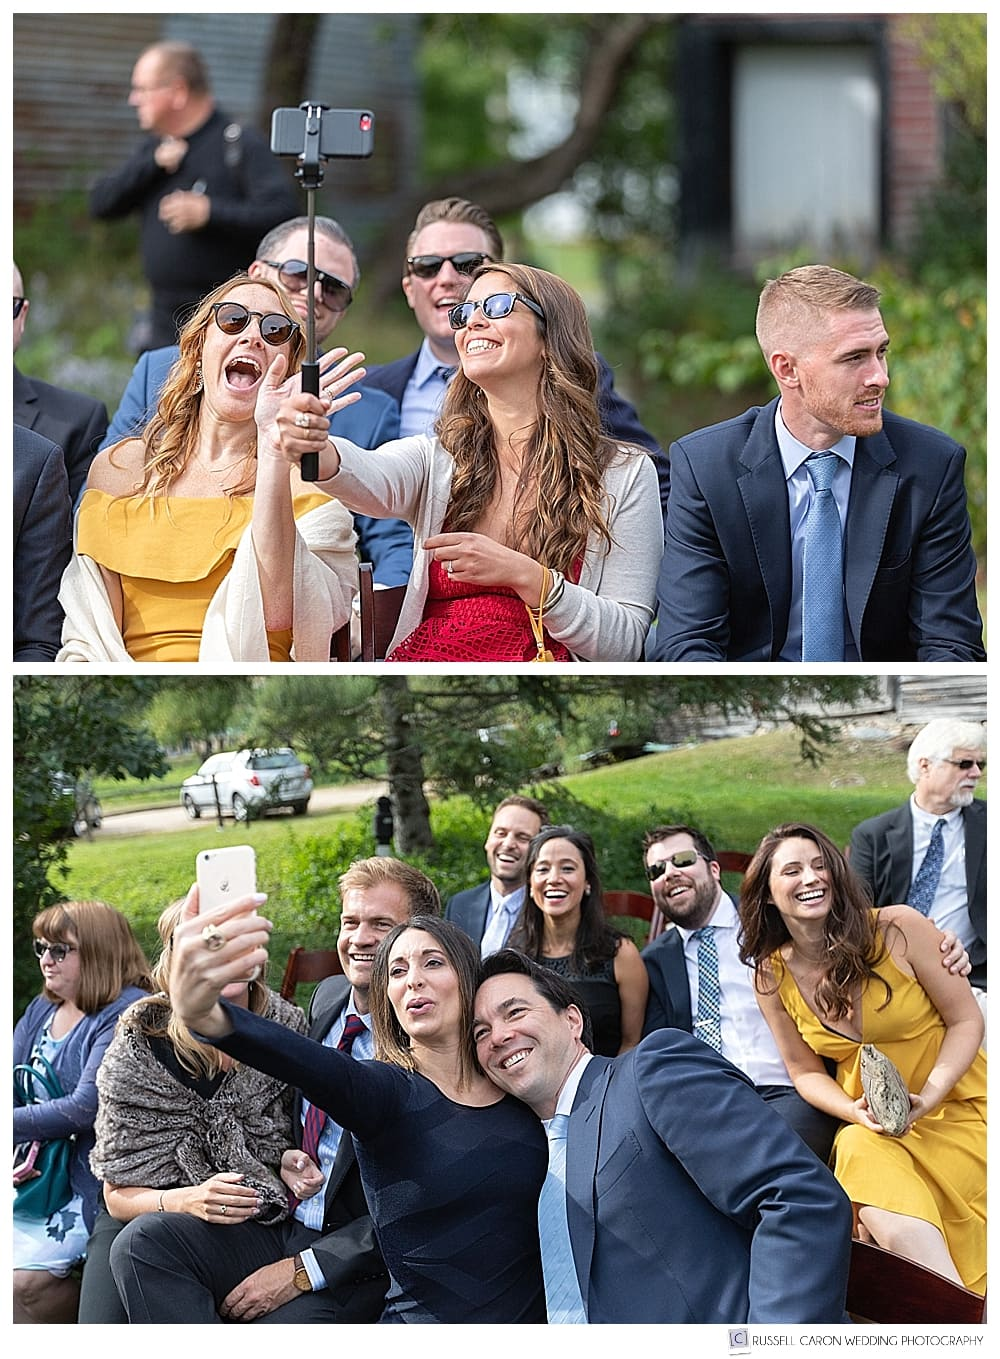 weddings guests taking group selfies photos